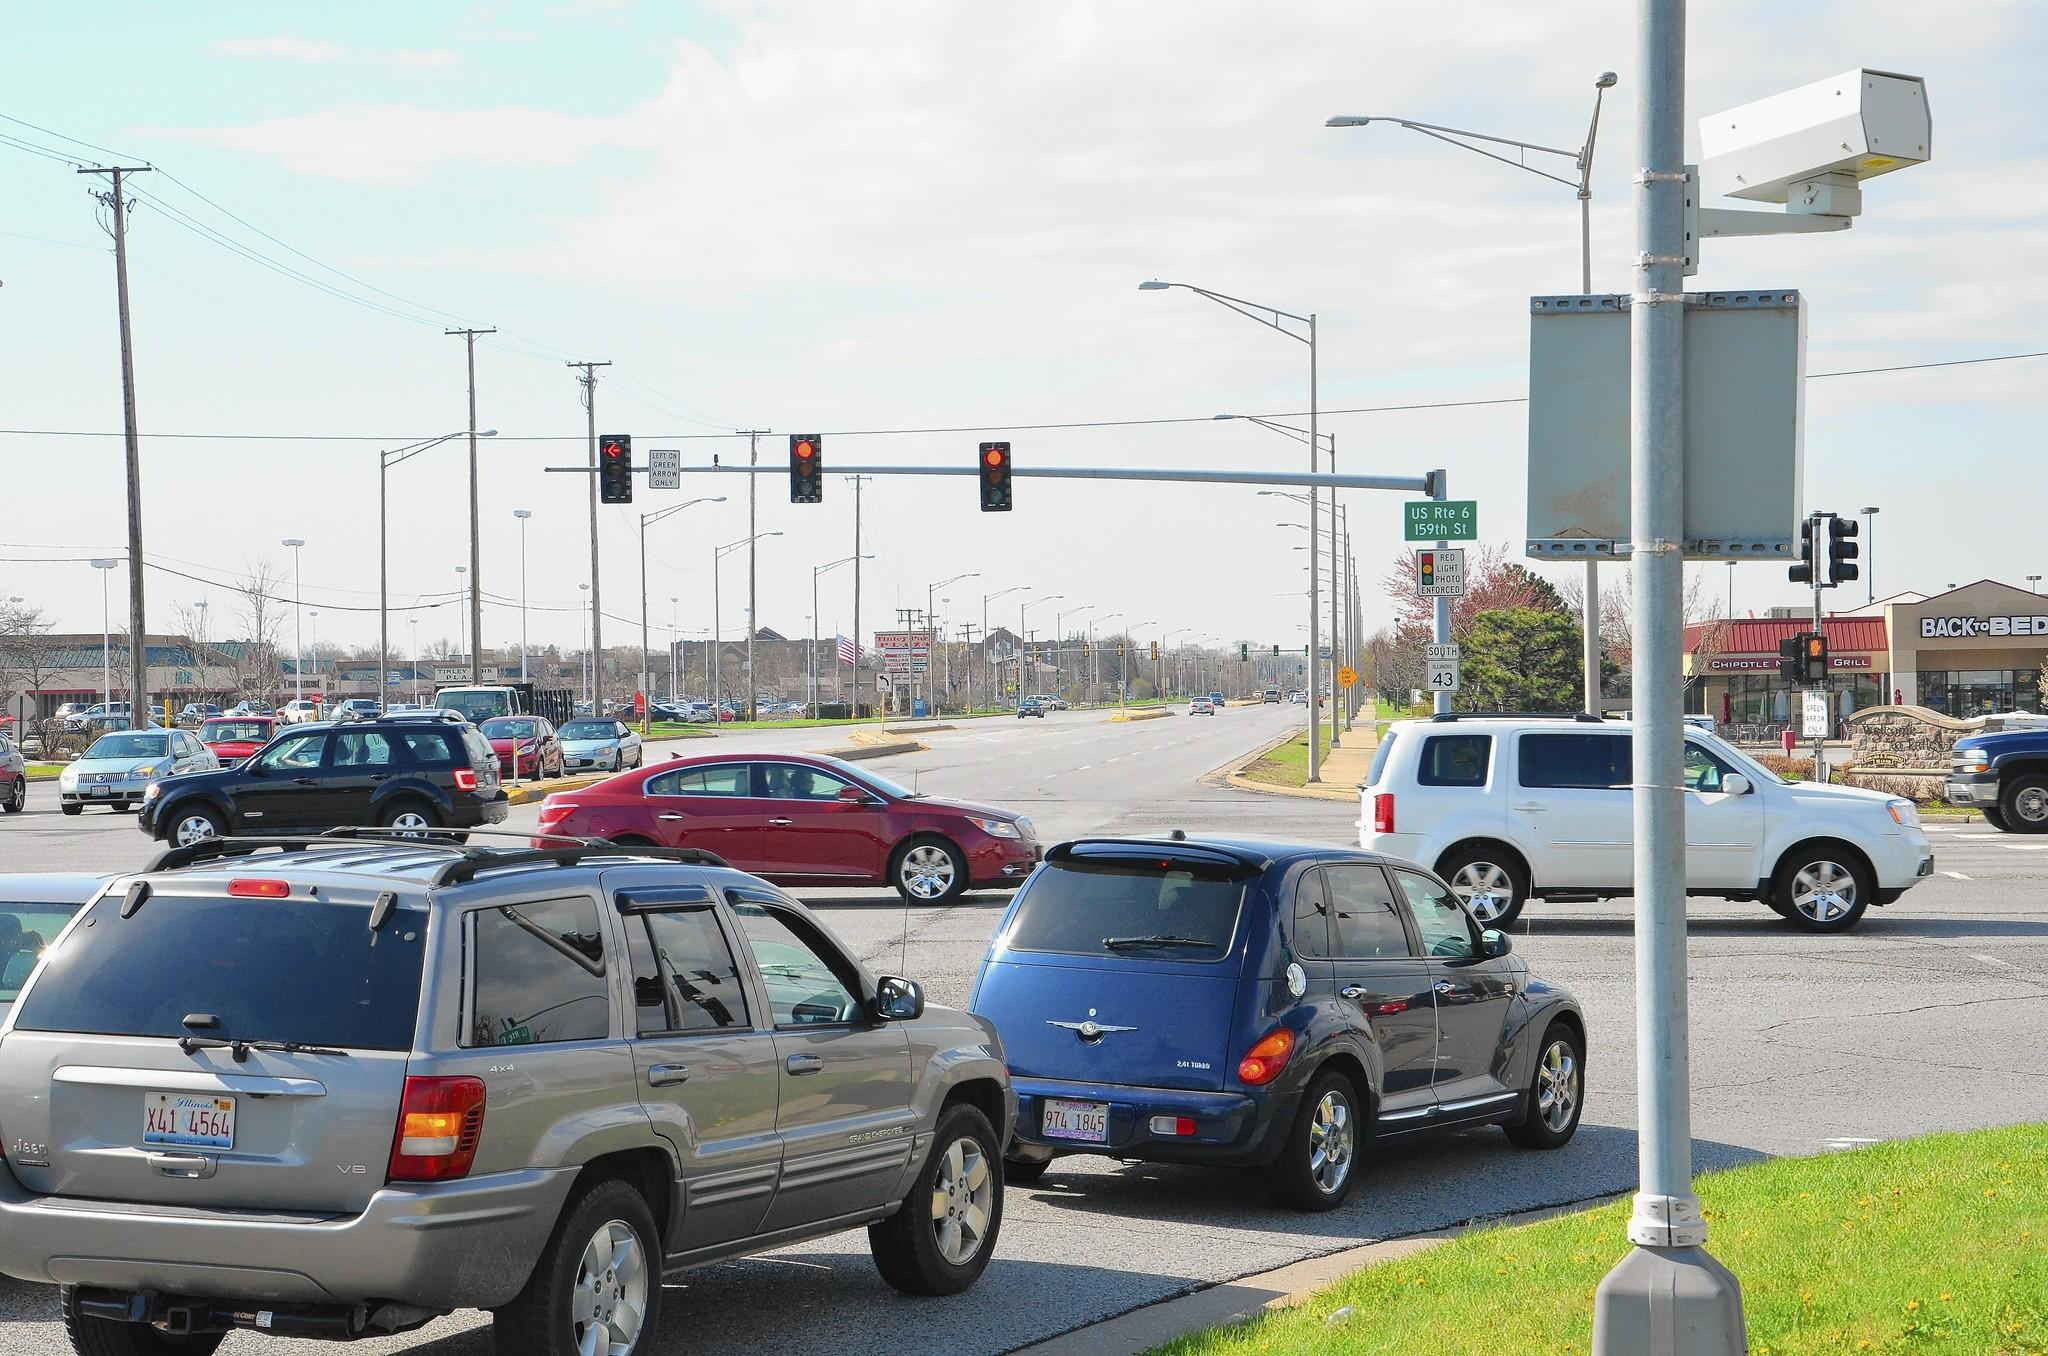 Orland Park is reviewing proposals from companies interested in managing the village's red light cameras. Though violations and revenues have been falling, village officials say the cameras make streets safer and are here to stay.